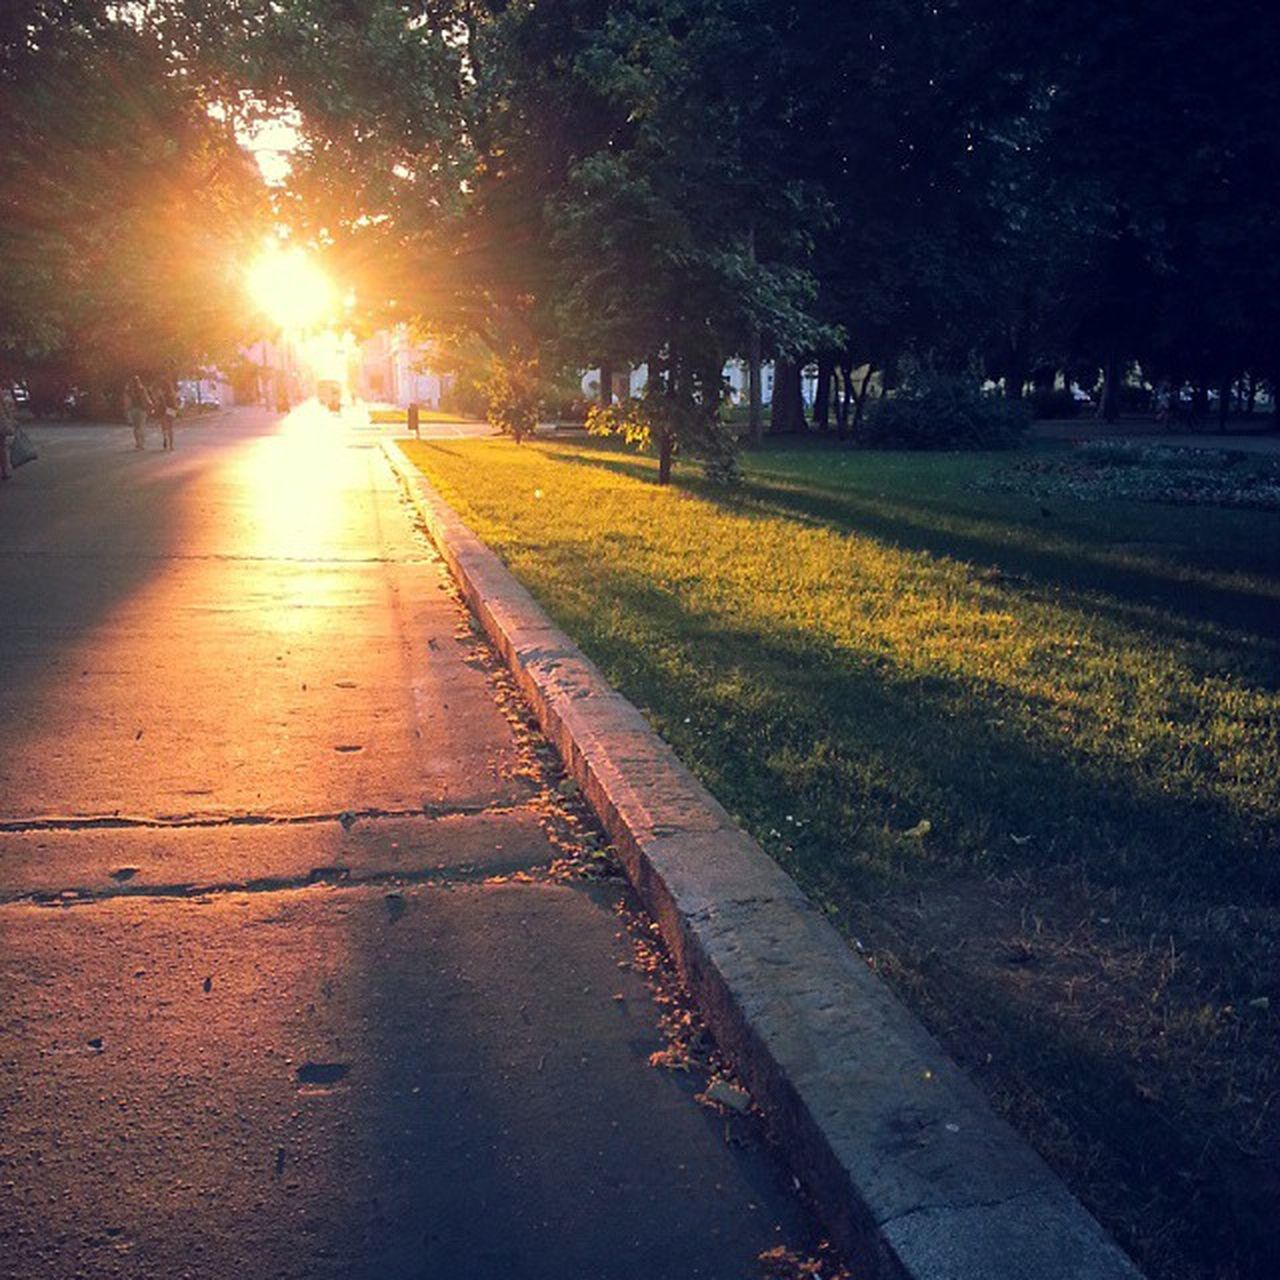 sunset, road, tree, sun, street, sunlight, nature, outdoors, no people, beauty in nature, day, sky